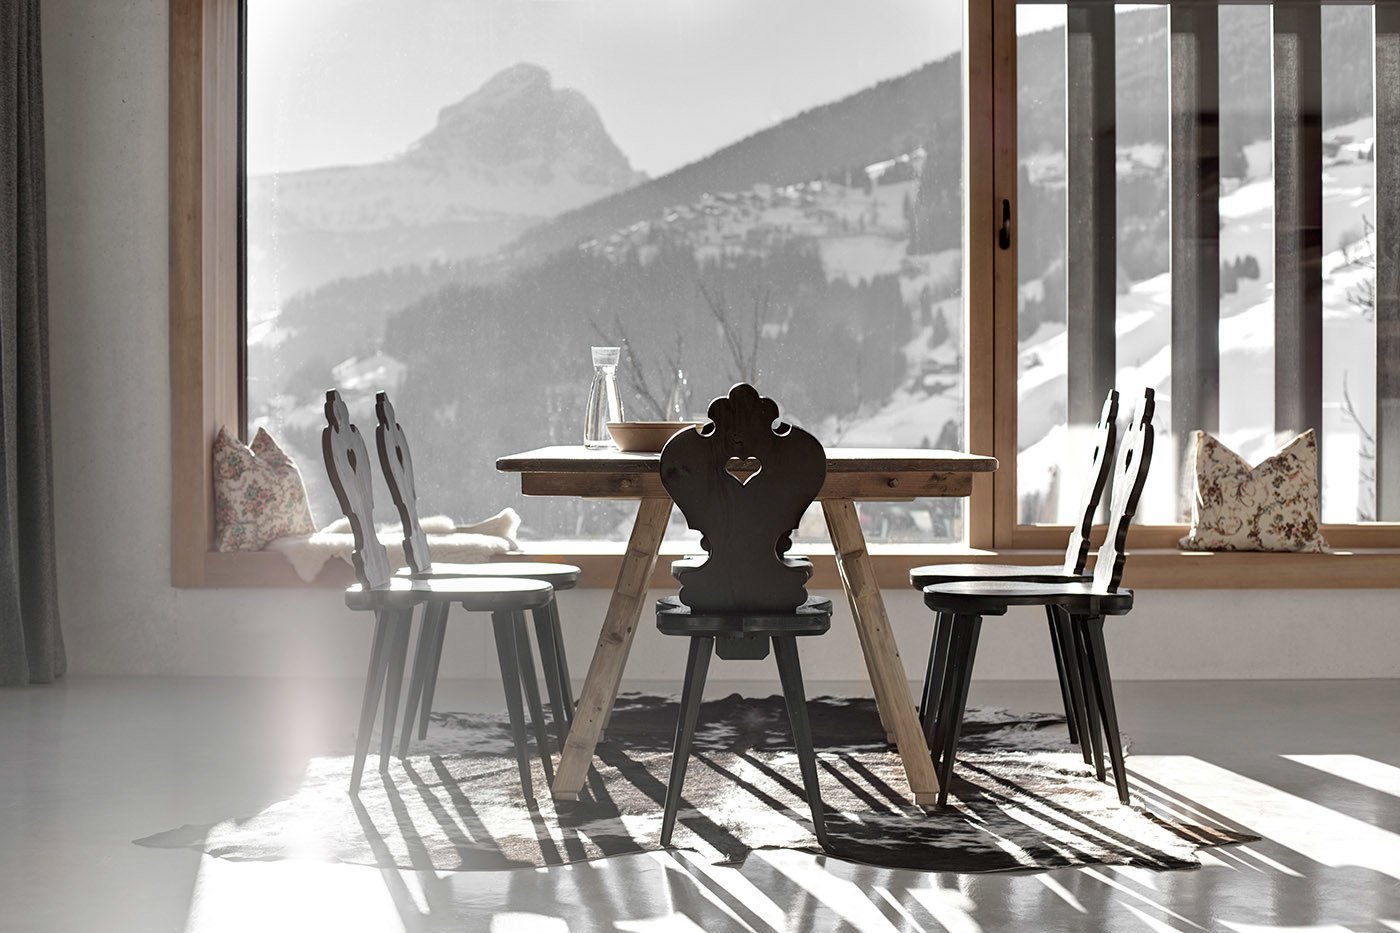 The kitchen and dining room enjoy panoramic mountain views. Local pine was hand-hewn for the flooring, windows, doors, and furniture throughout the residence. Tagged: Dining Room, Table, Chair, and Concrete Floor.  La Pedevilla by Dwell